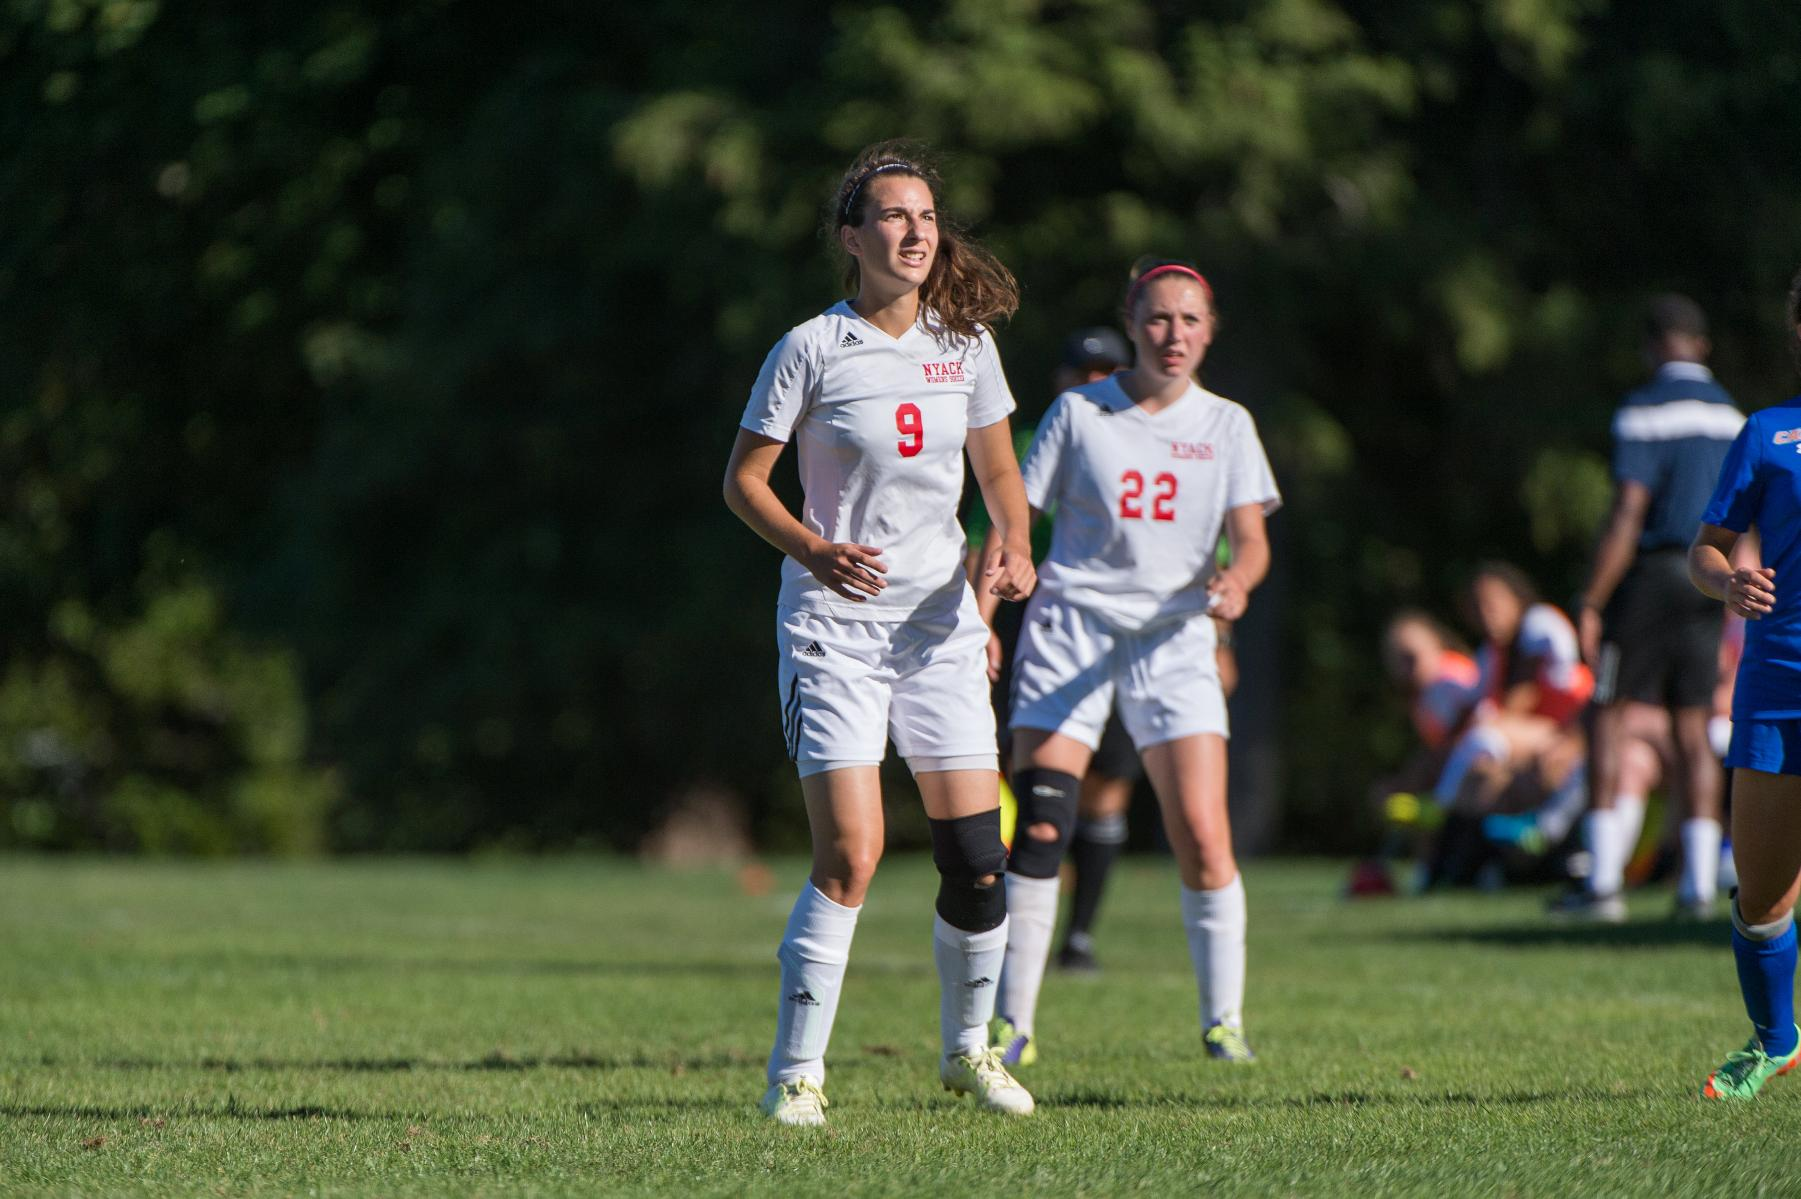 Goldey-Beacom upends Nyack 2-1 in CACC opener